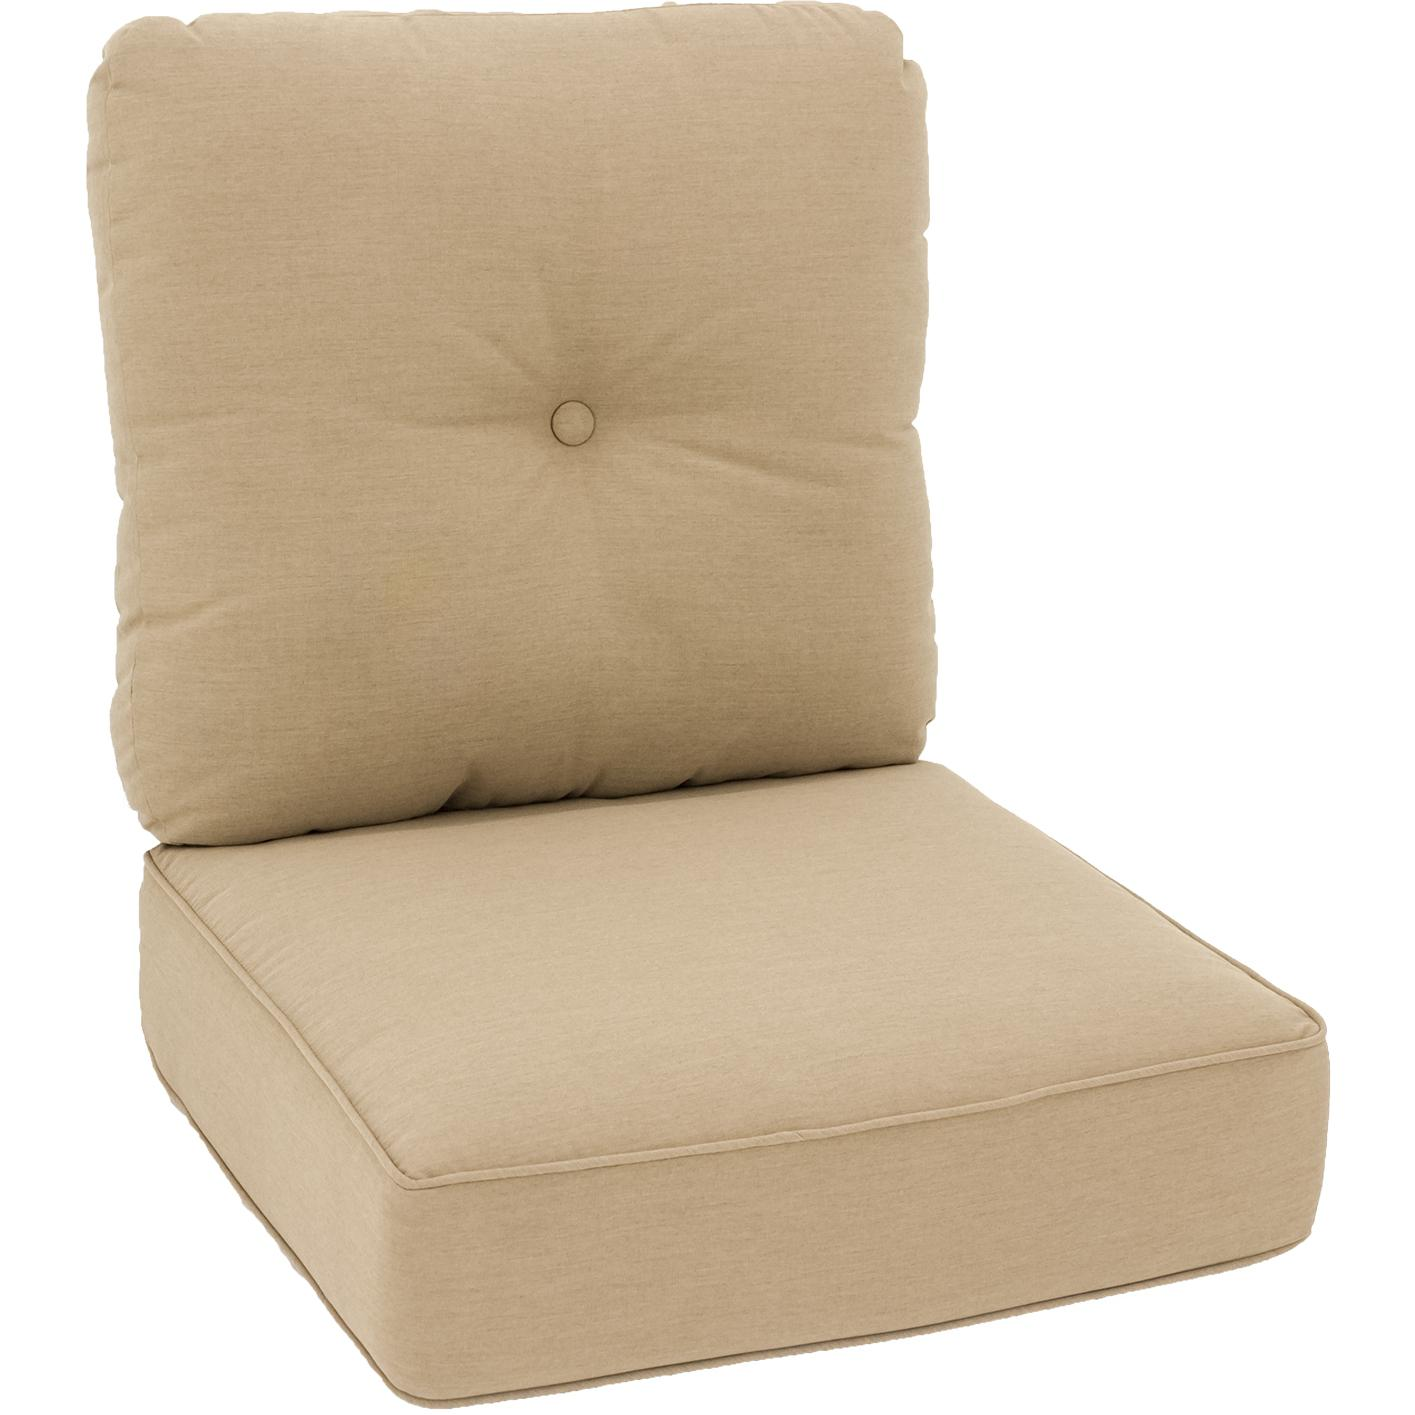 replacement cushions for outdoor furniture beige outdoor replacement cushions OGUKFCZ